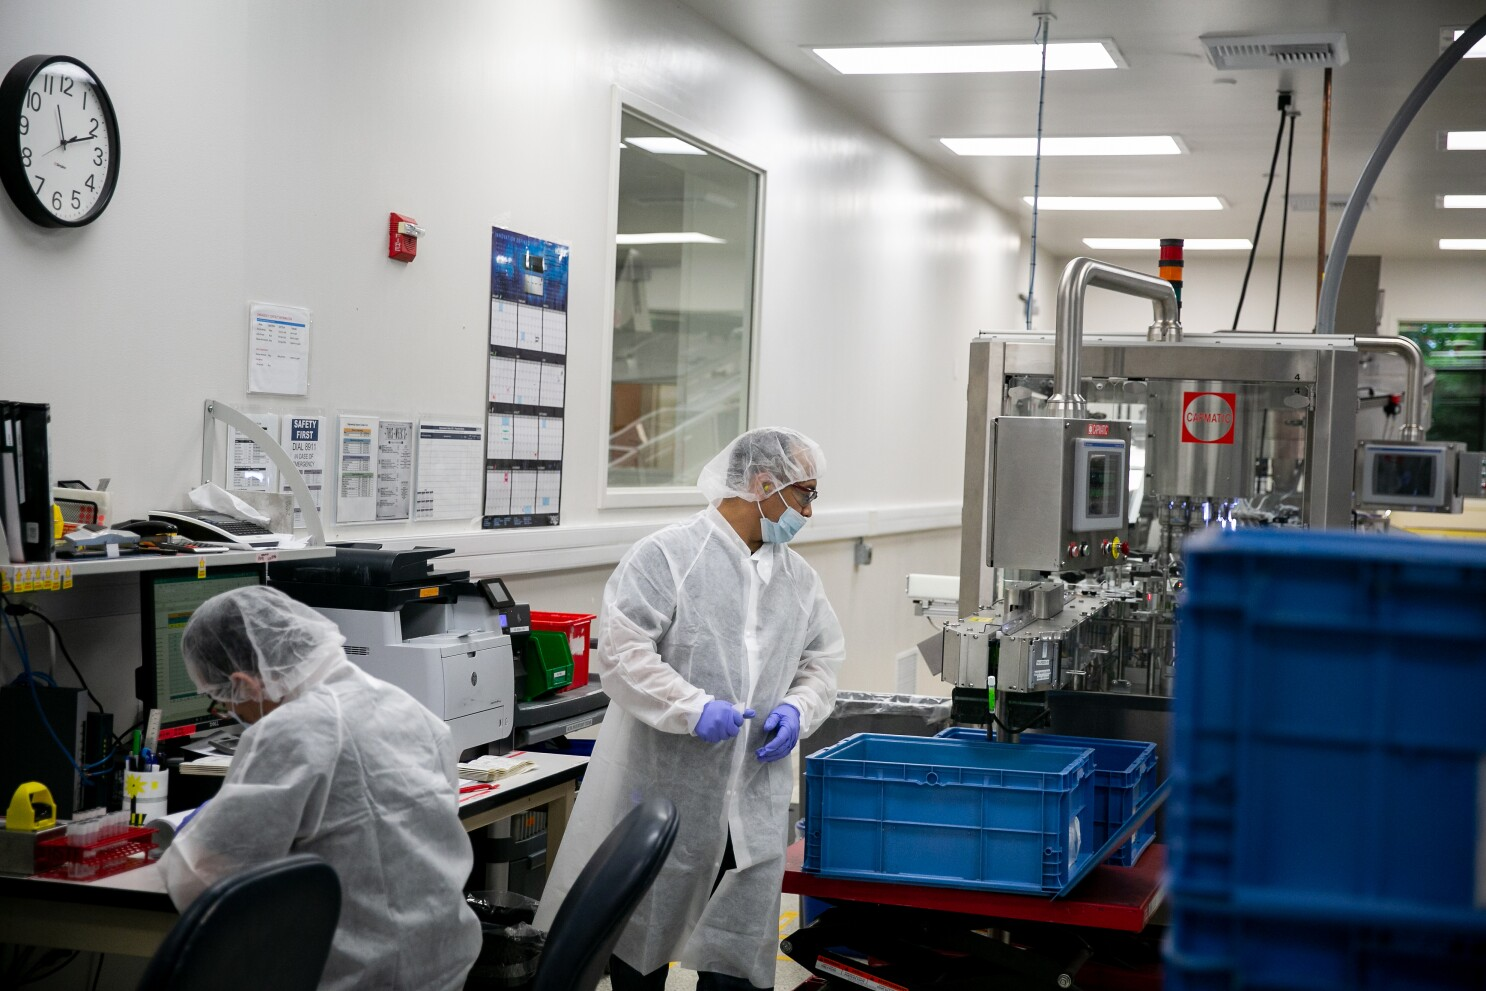 2 more San Diego companies get emergency approval to produce coronavirus tests - The San Diego Union-Tribune